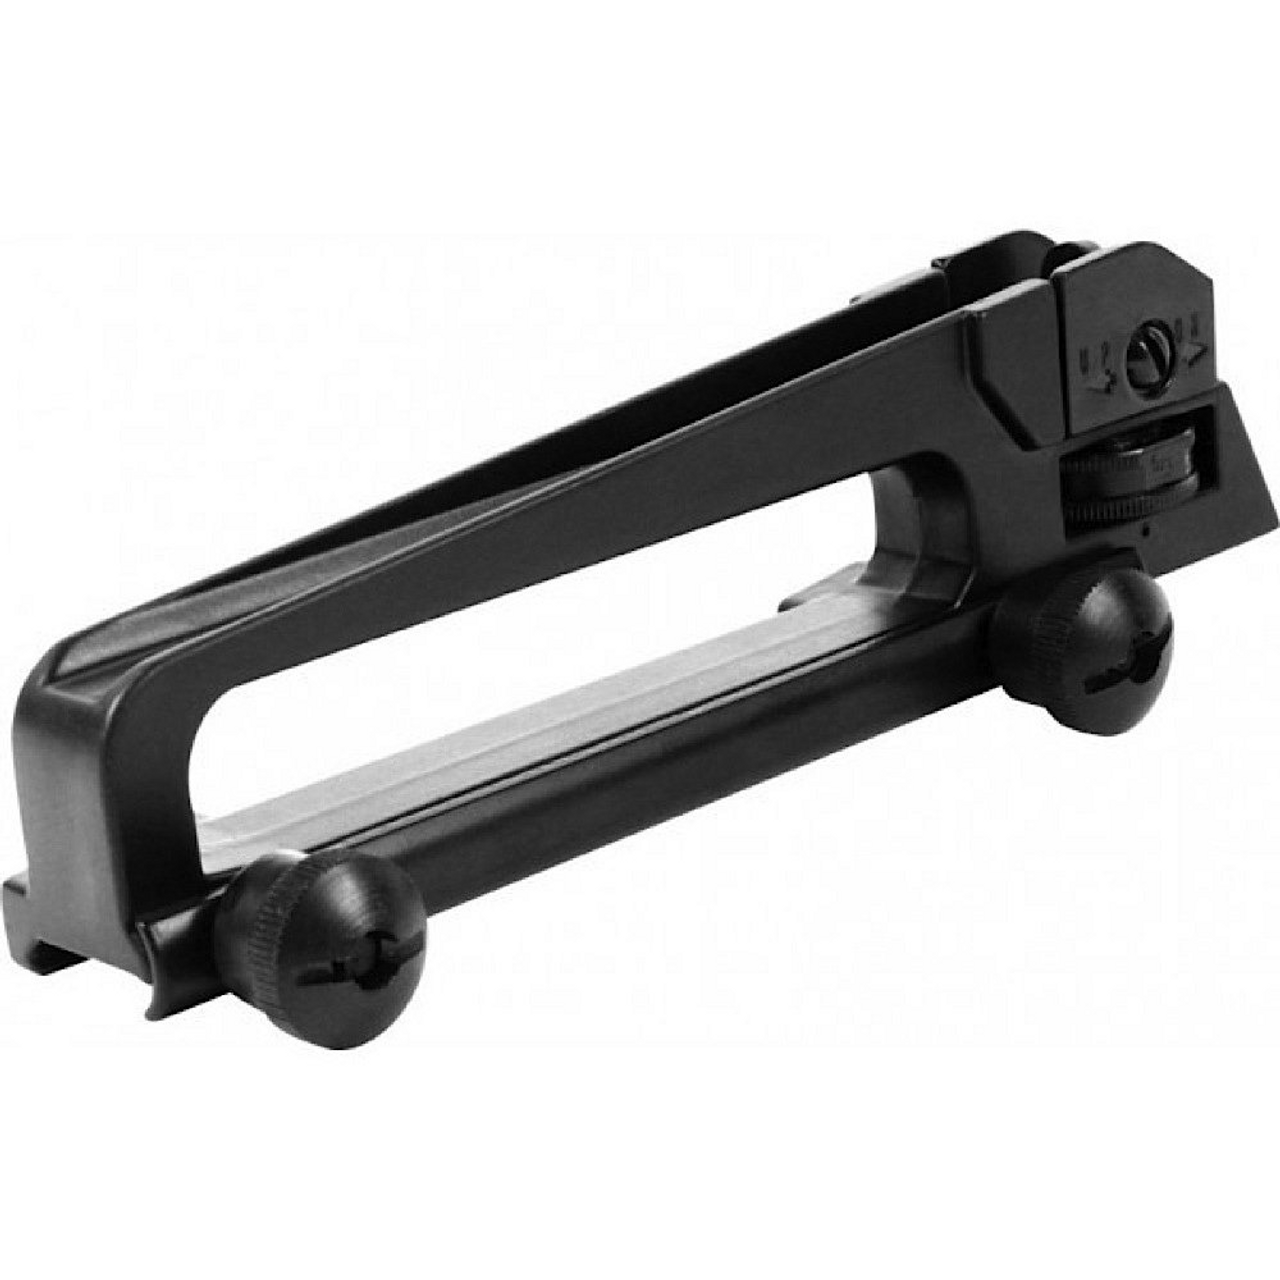 223 Detachable carry handle Fully Metal w/ Dual Aperture A2 Rear Sight